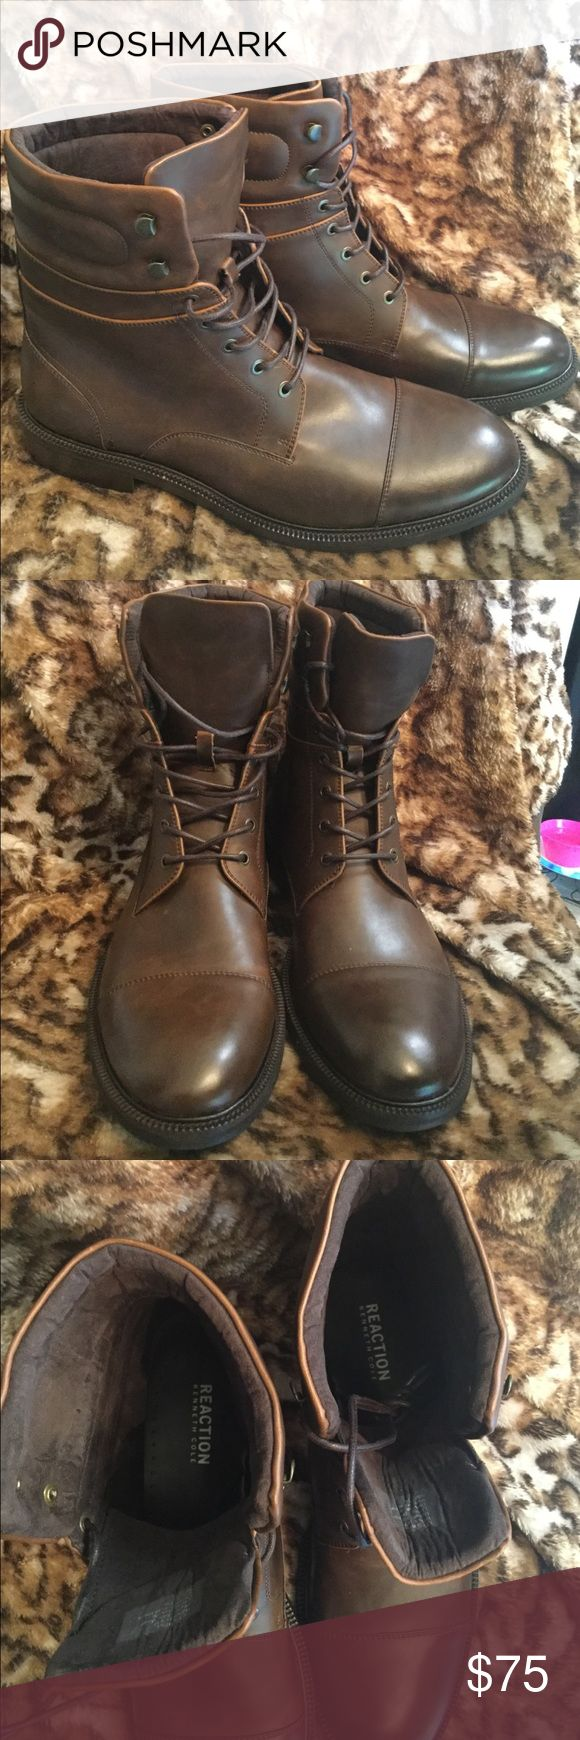 "NWOT Reaction Kenneth Cole Men's Brown Boots NWOT Reaction Kenneth Cole ""Let's Roll"" Men's Brown Combat Boots Kenneth Cole Reaction Shoes Boots"